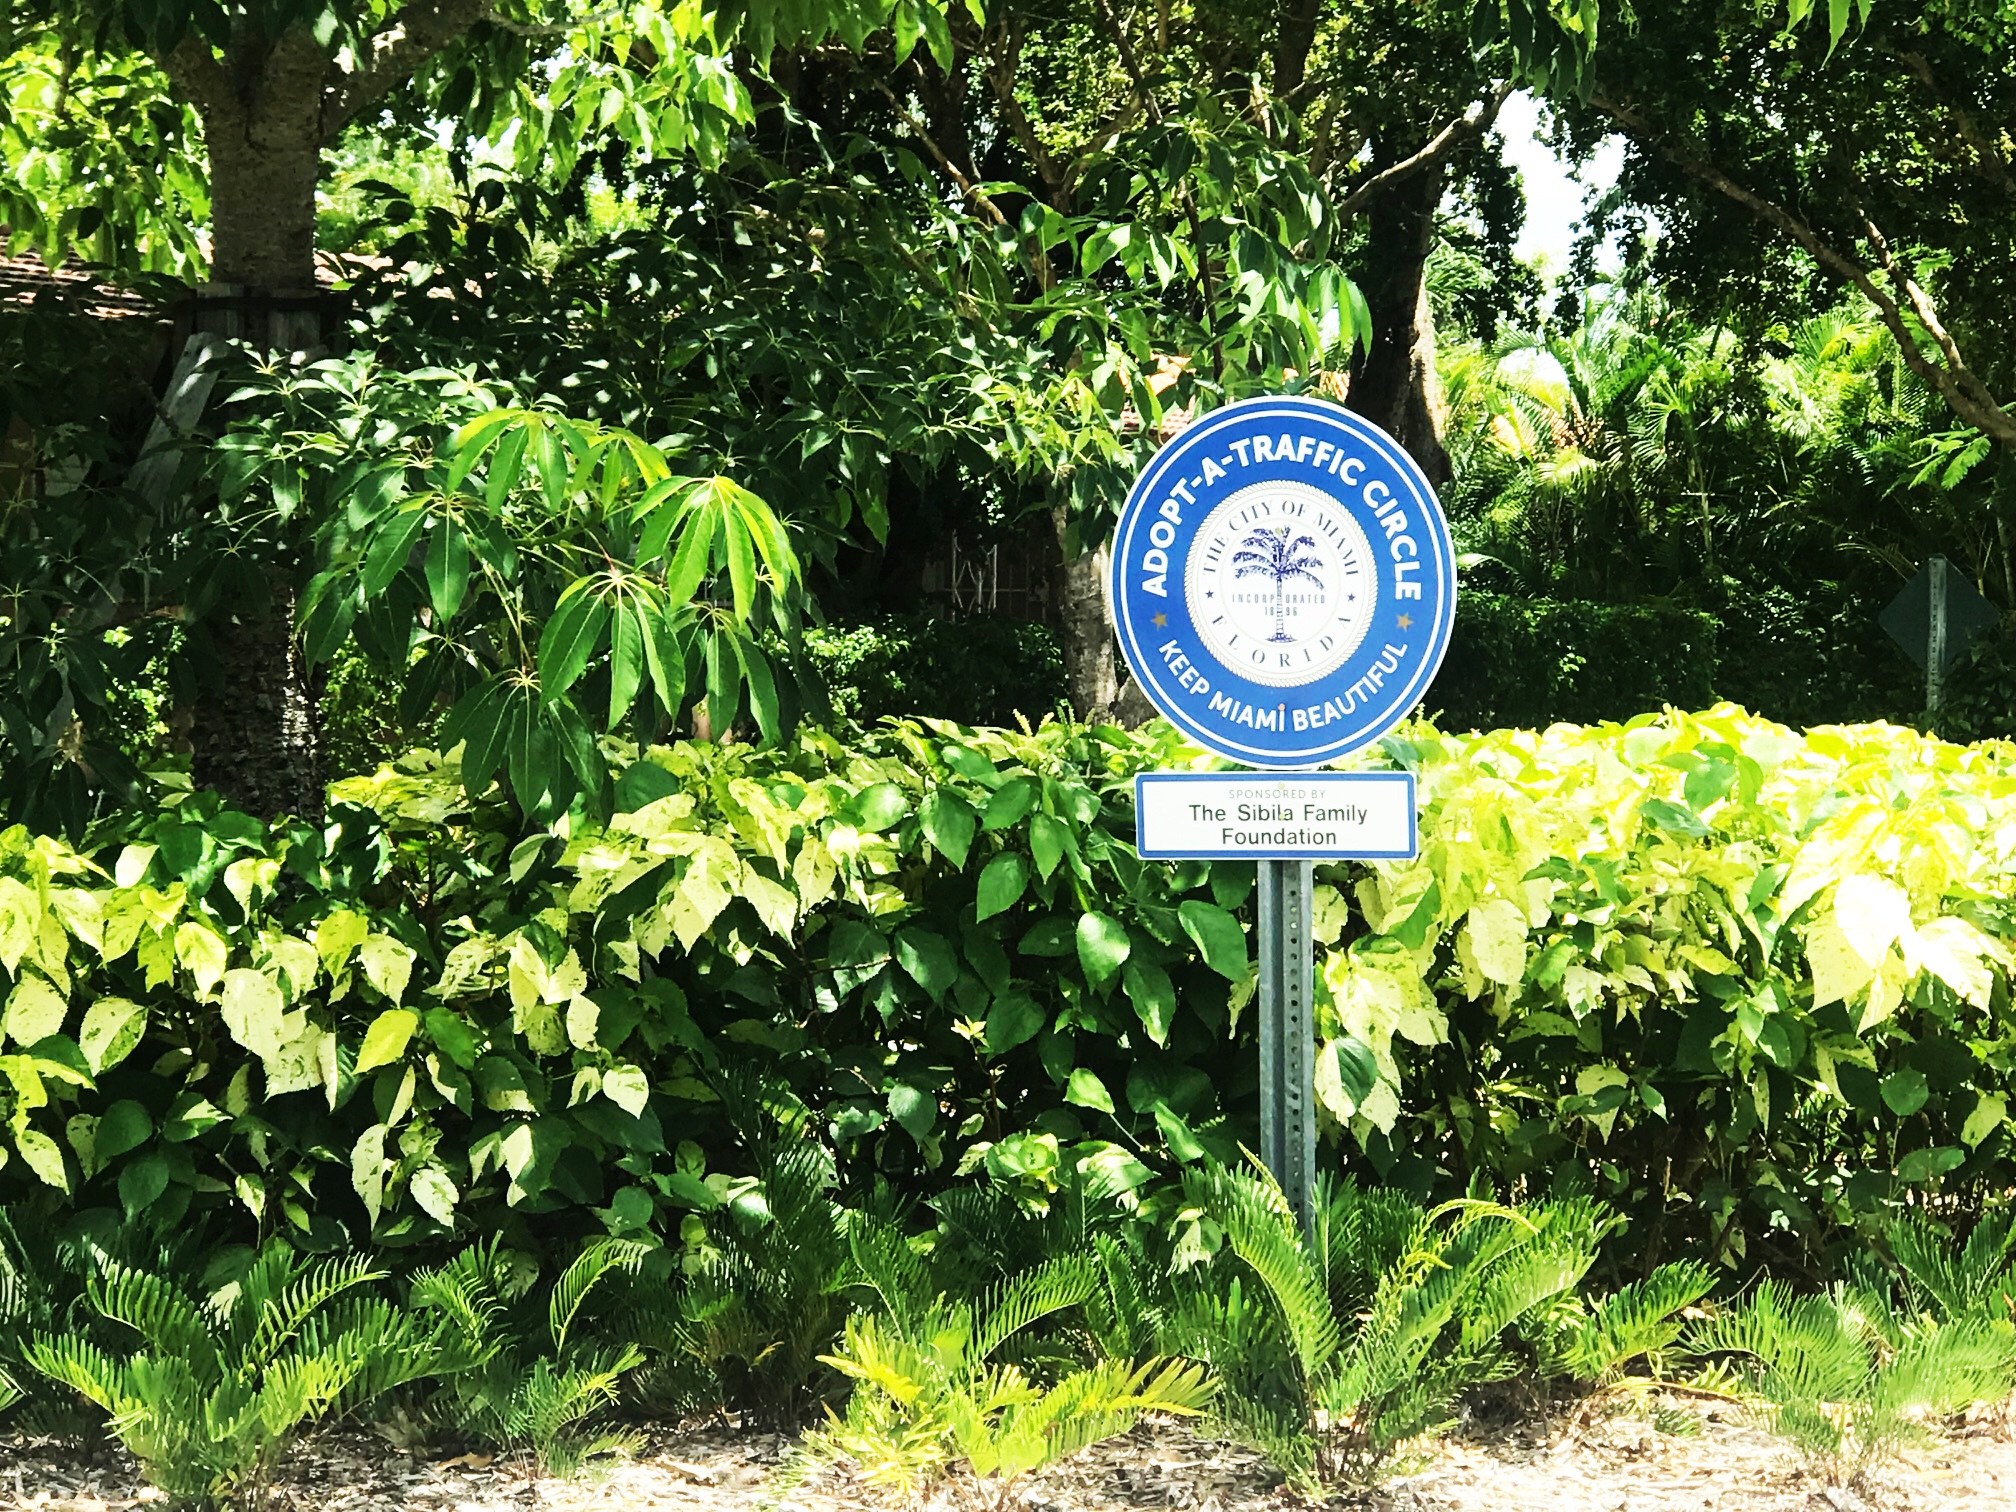 Sibila Family Foundation Circle